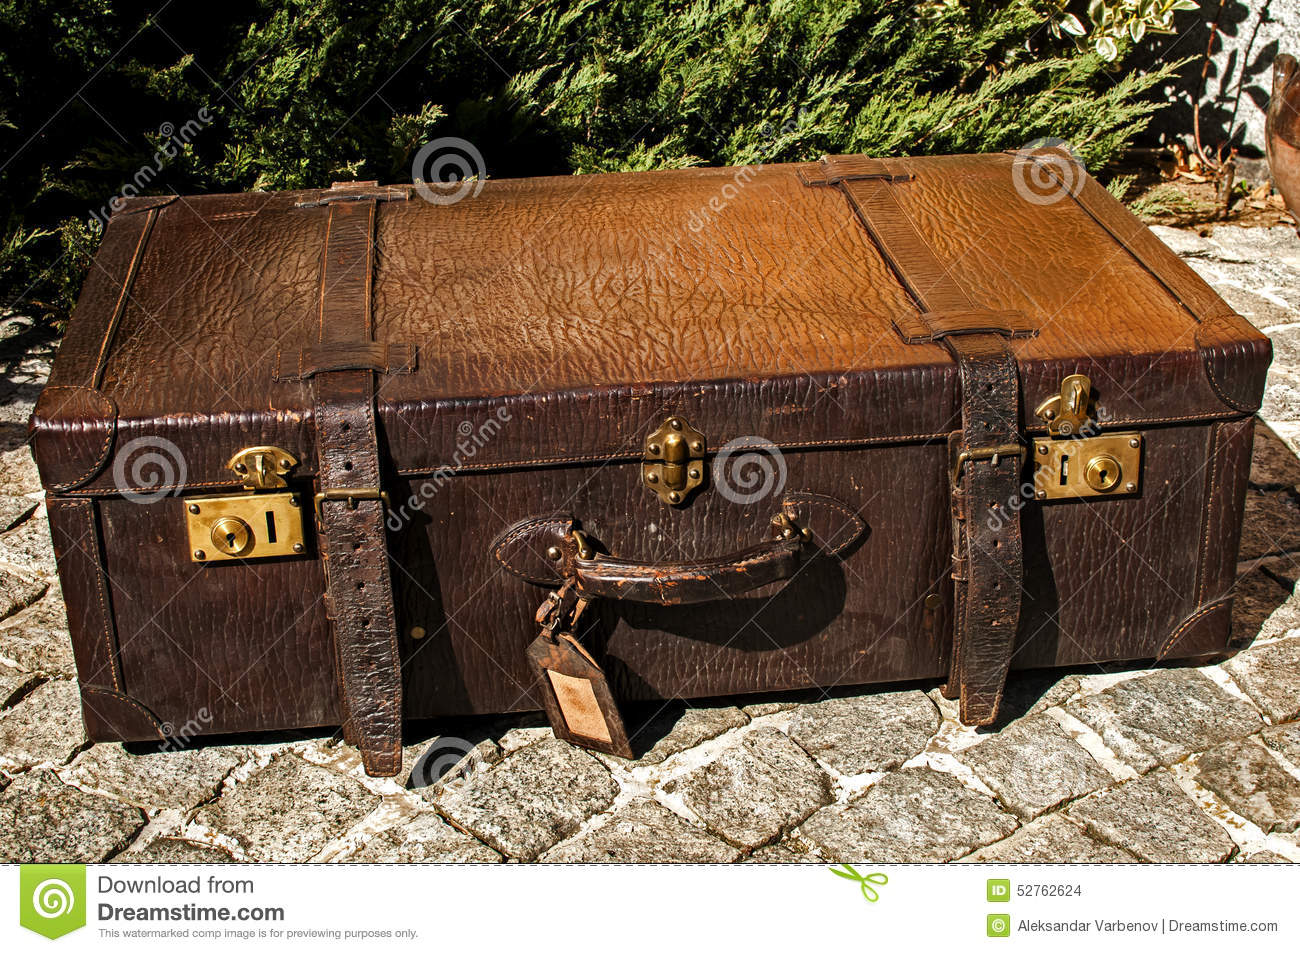 Old fashioned leather suitcase Arabella Figg Harry Potter Wiki FANDOM powered by Wikia